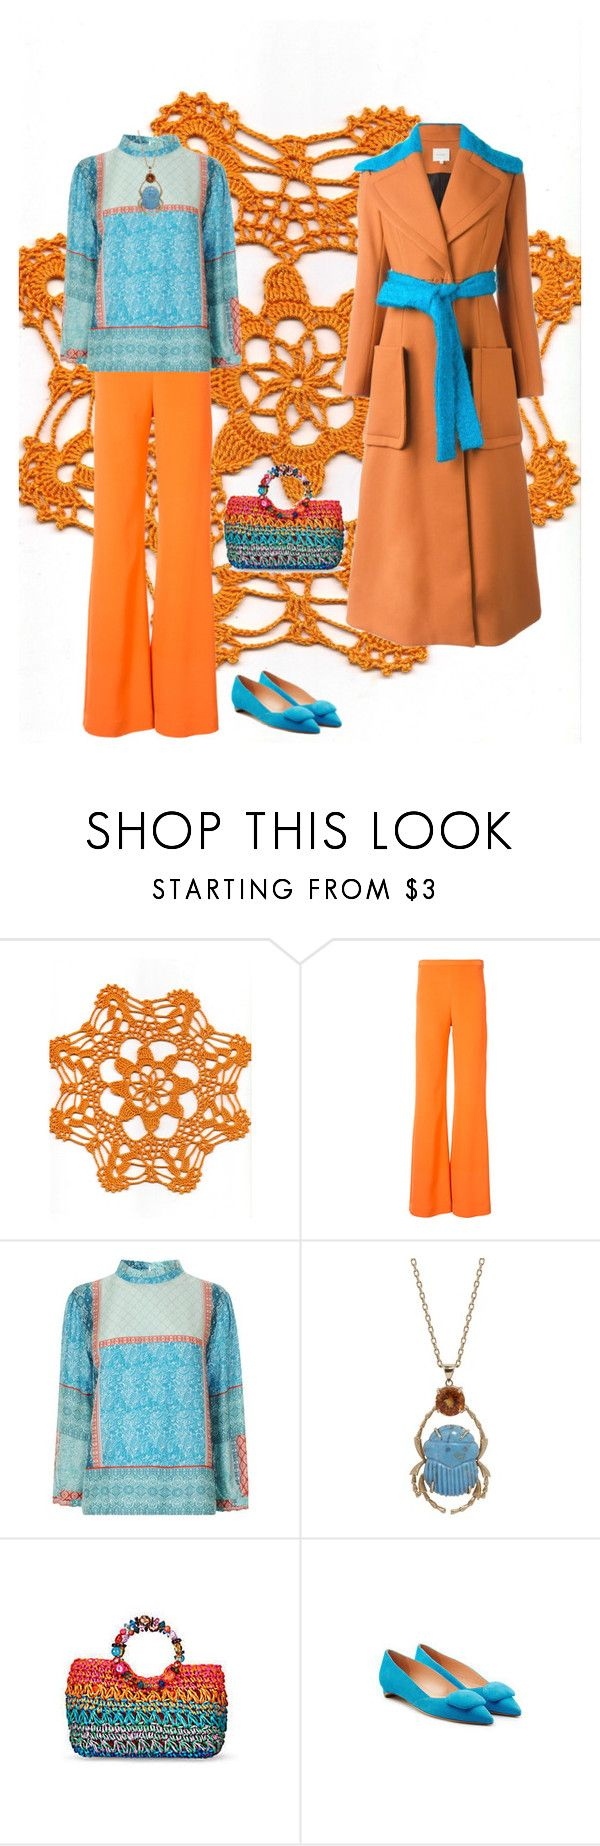 """Untitled #8107"" by msdanasue ❤ liked on Polyvore featuring Christian Siriano, BOSS Orange, Kim Rogers, Rupert Sanderson and Delpozo"